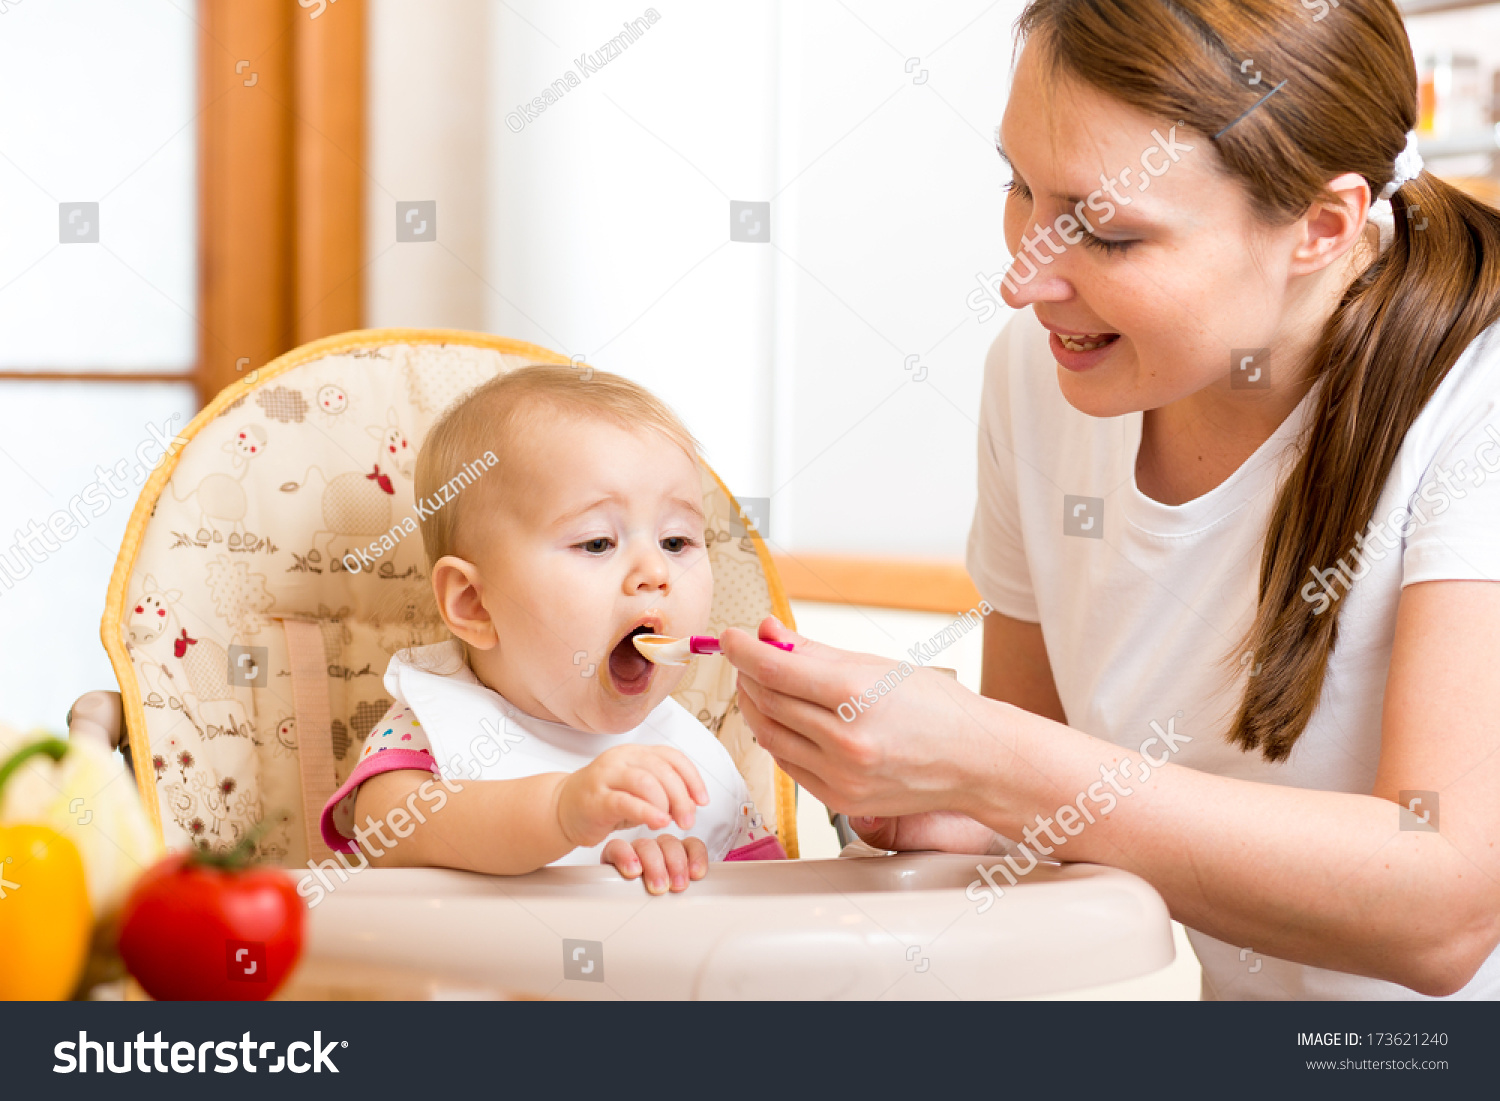 Baby Feeding Spoons Mother Feeding Baby Spoon Stock Photo 173621240 Shutterstock